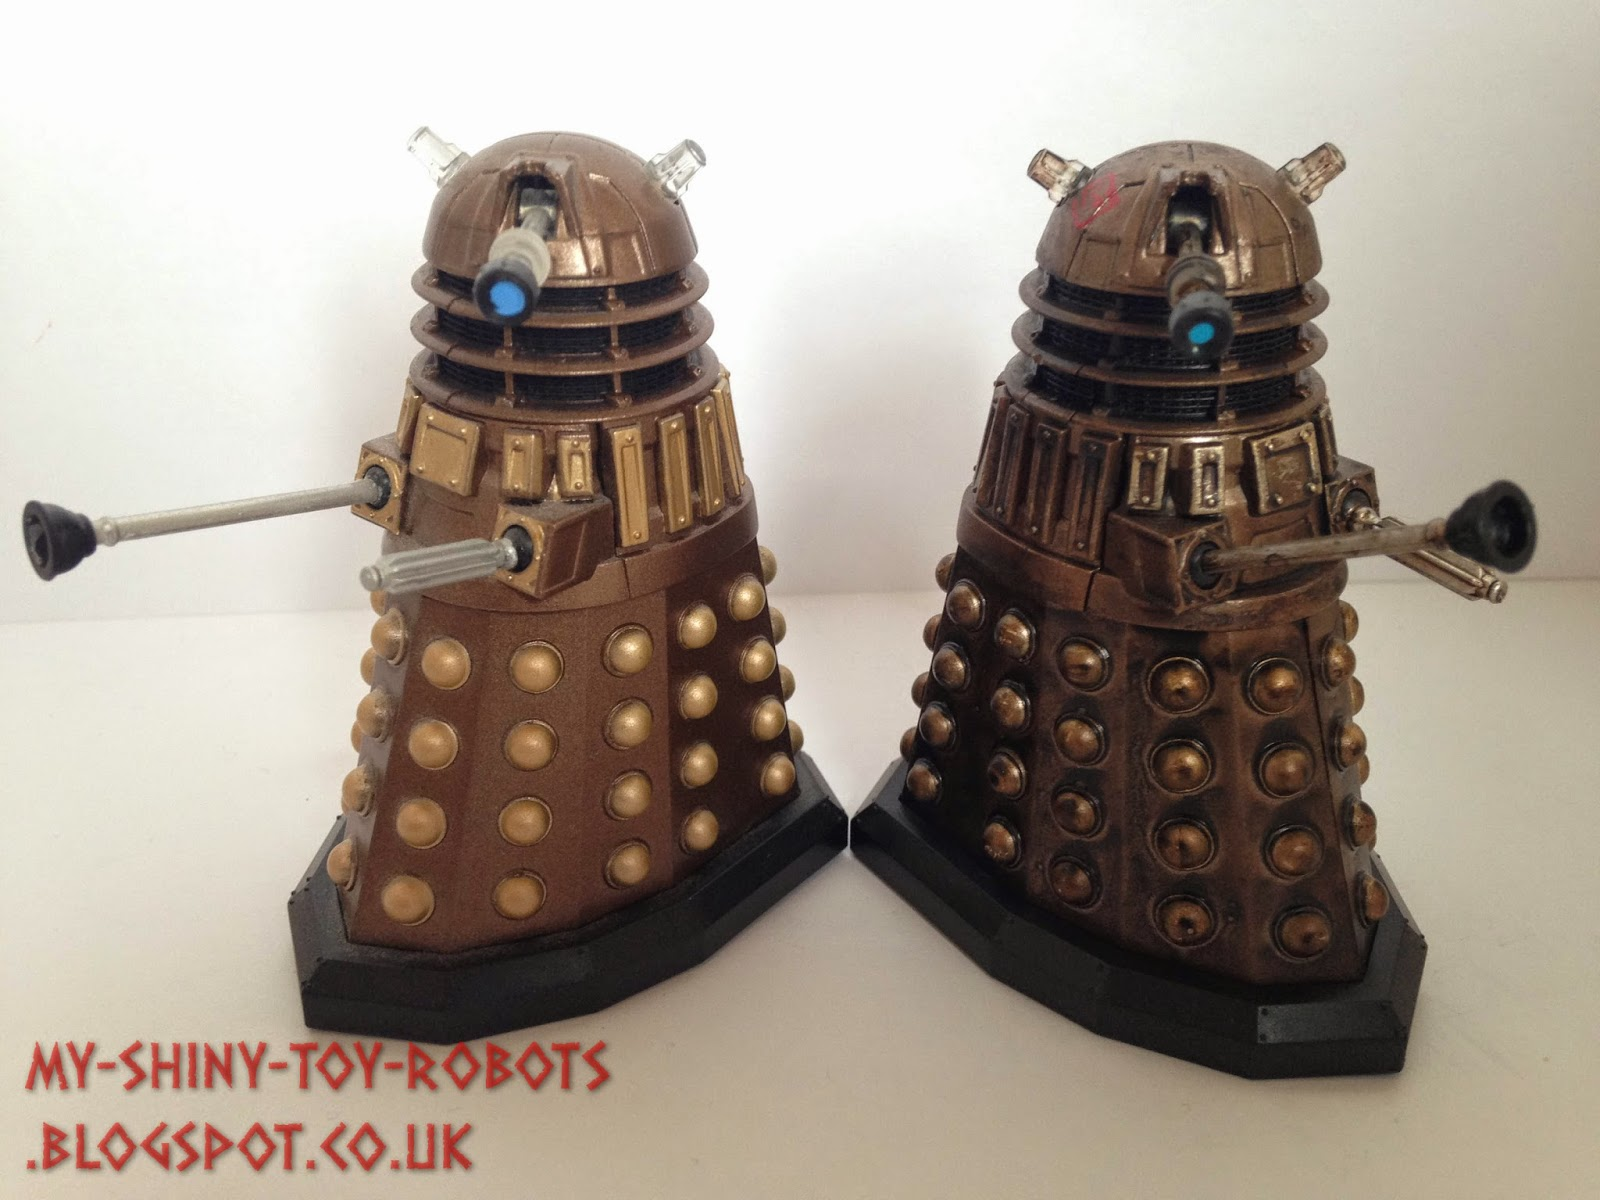 With the standard Dalek figure